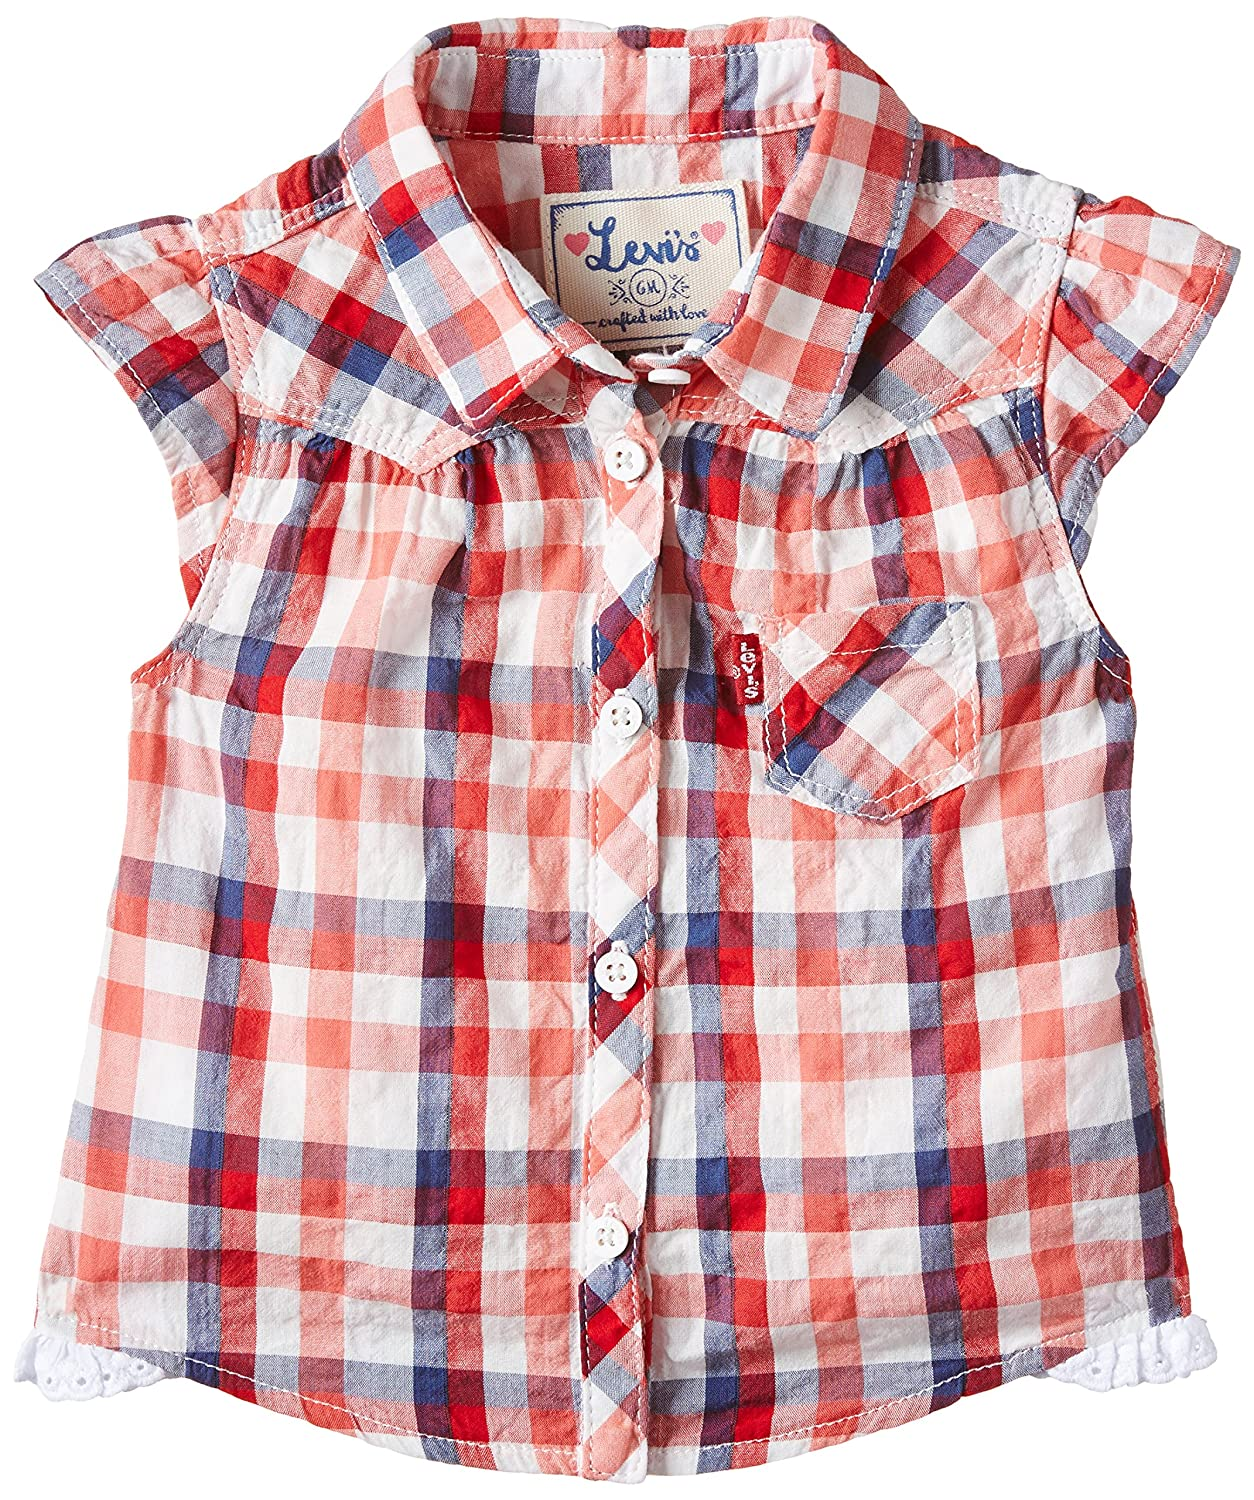 Levi's Kids Baby Girls Levi's® Shirt Blouse (Red 03) 3-6 (Size: 6 Months) Groupe Zannier International NF12504